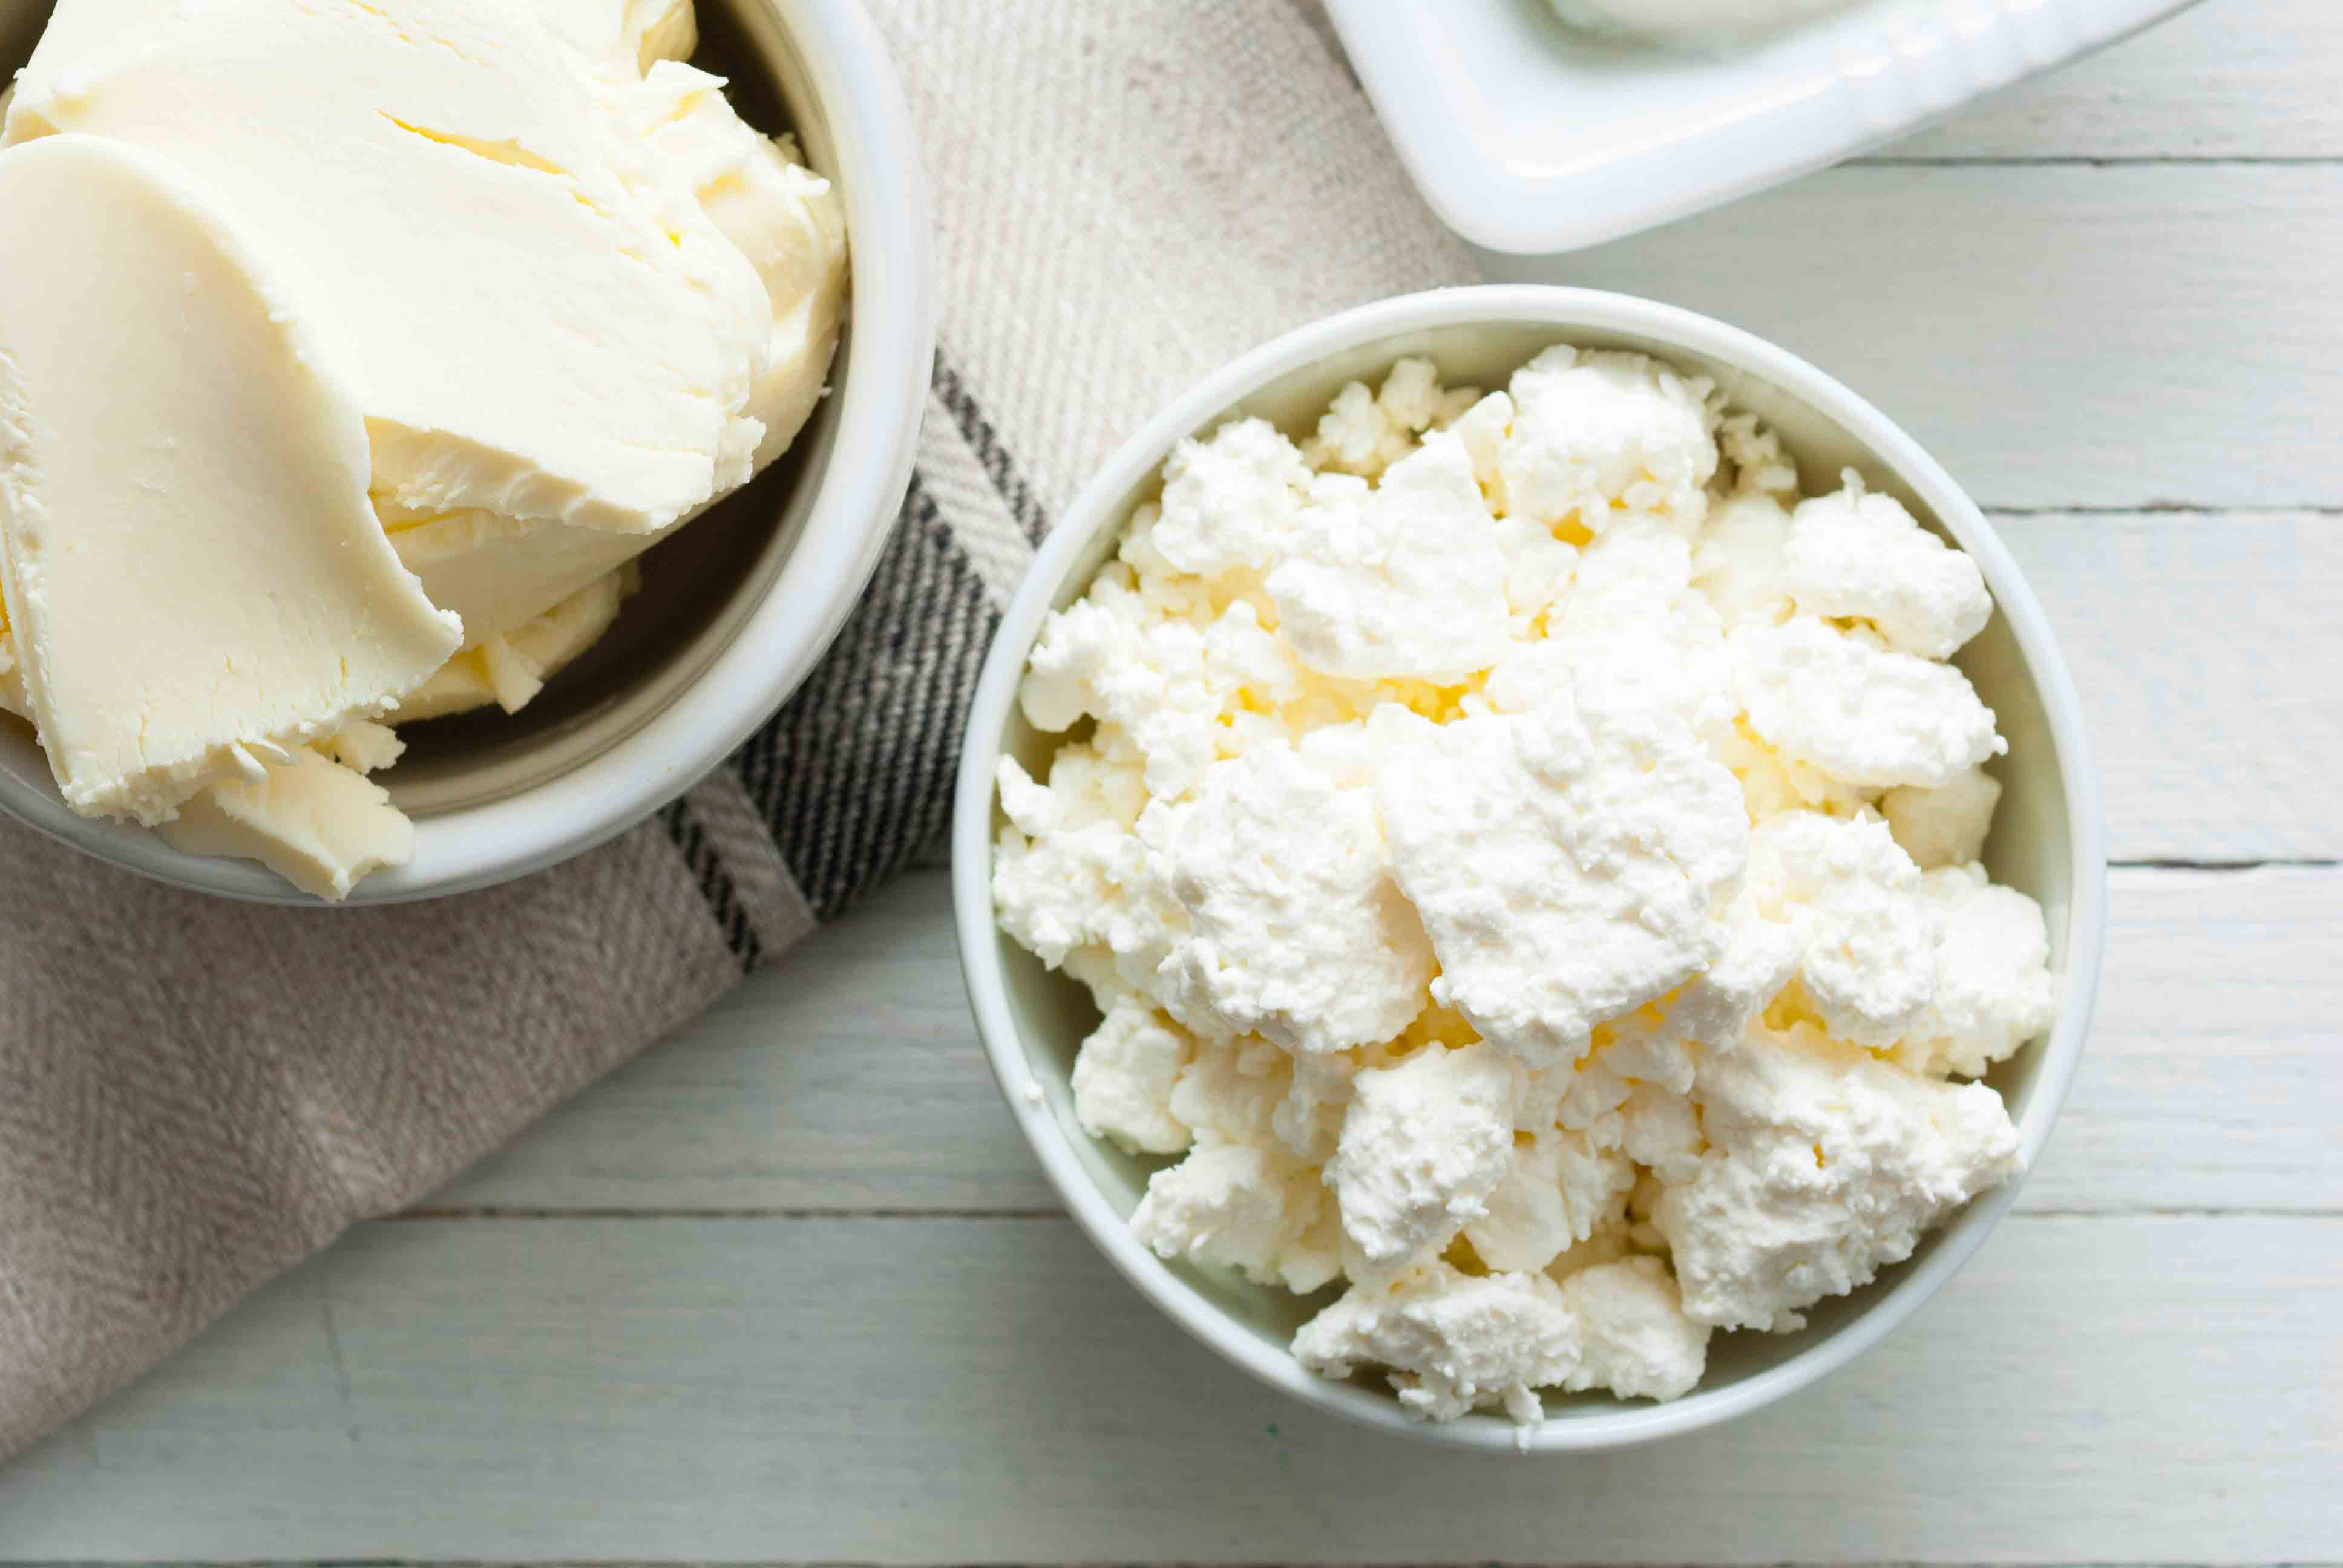 A bowl of white buttermilk cheese